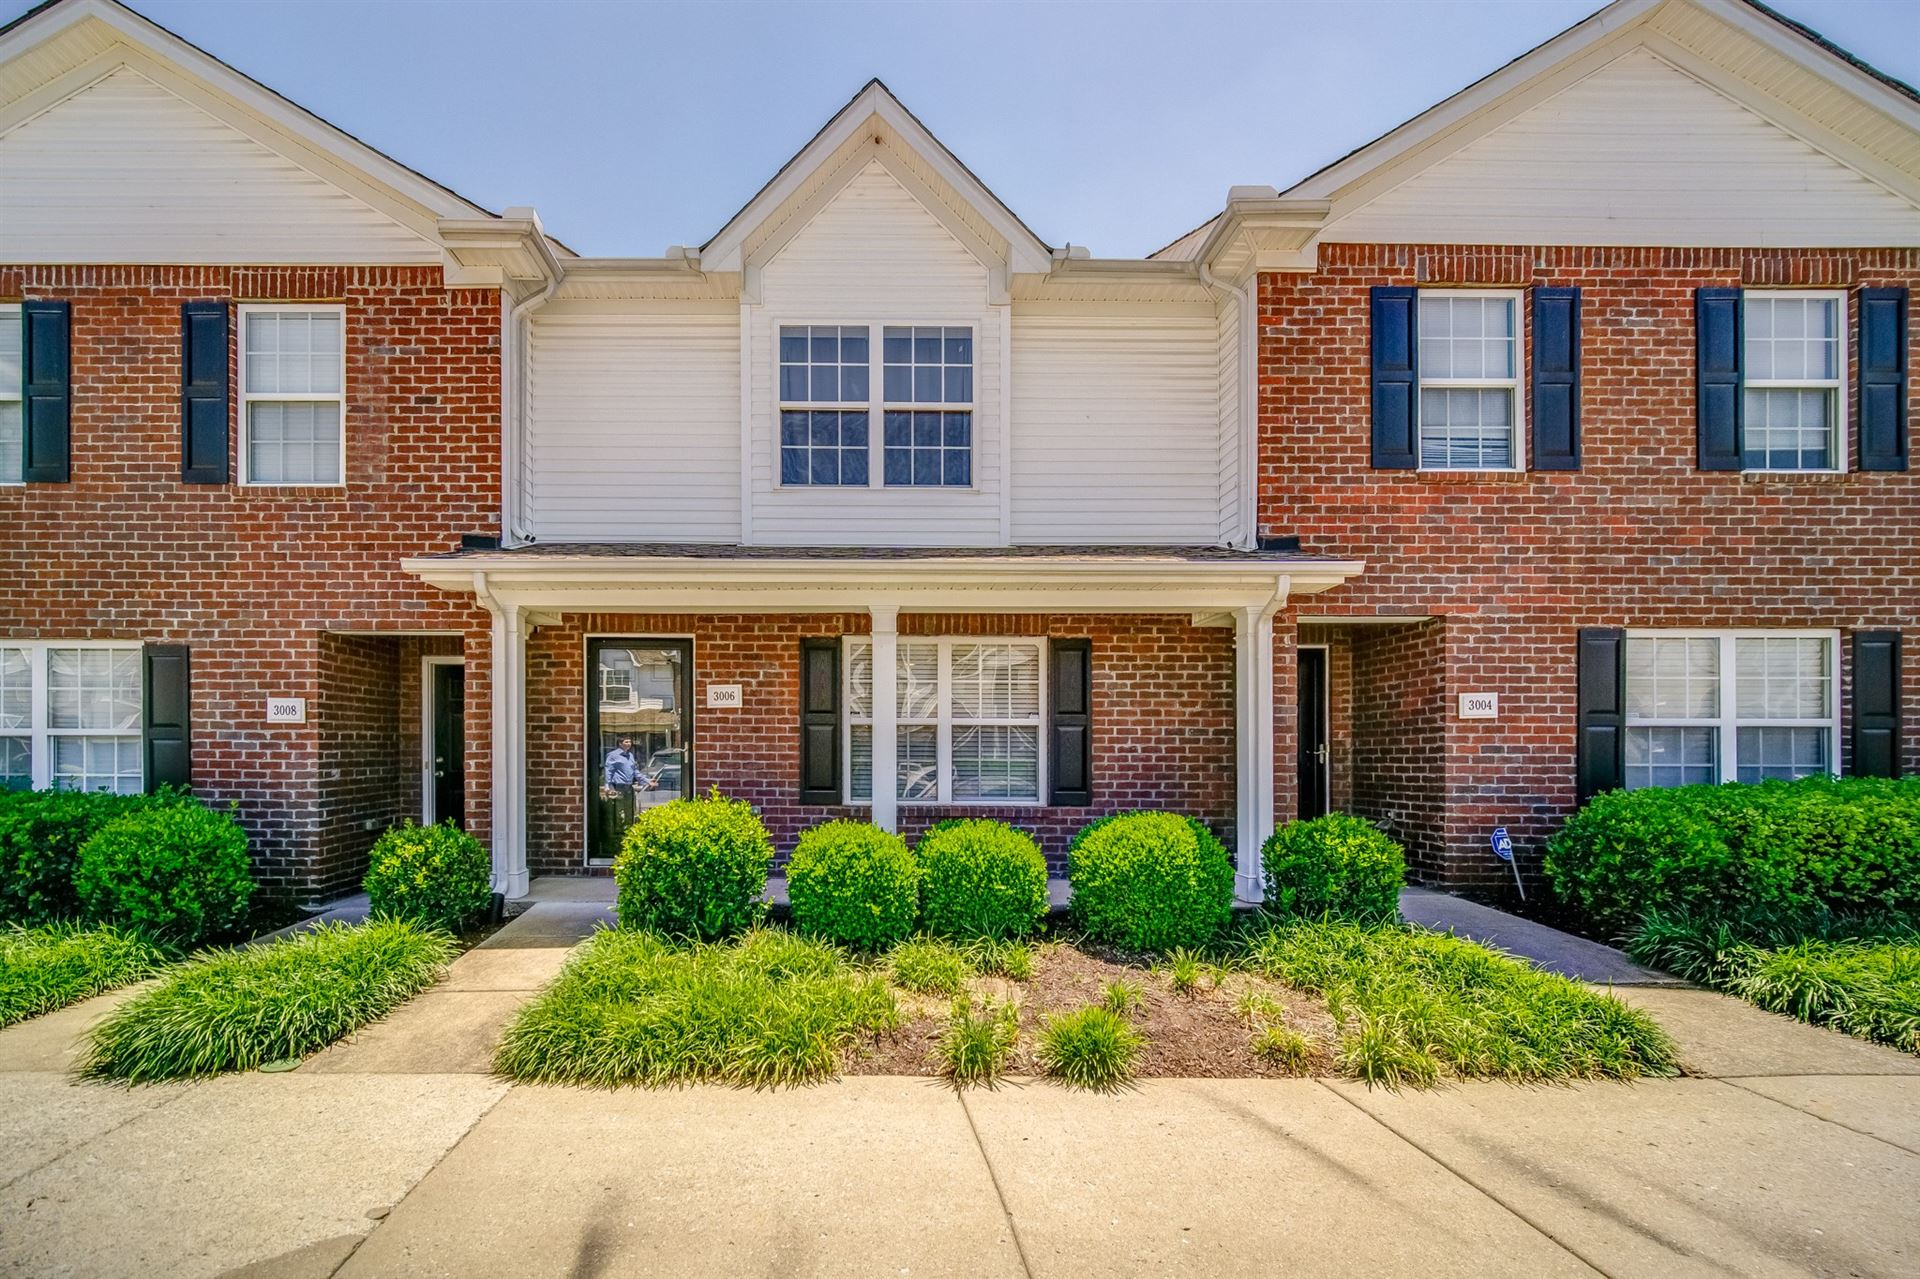 3006 George Buchanan Dr, La Vergne, TN 37086 - MLS#: 2217941